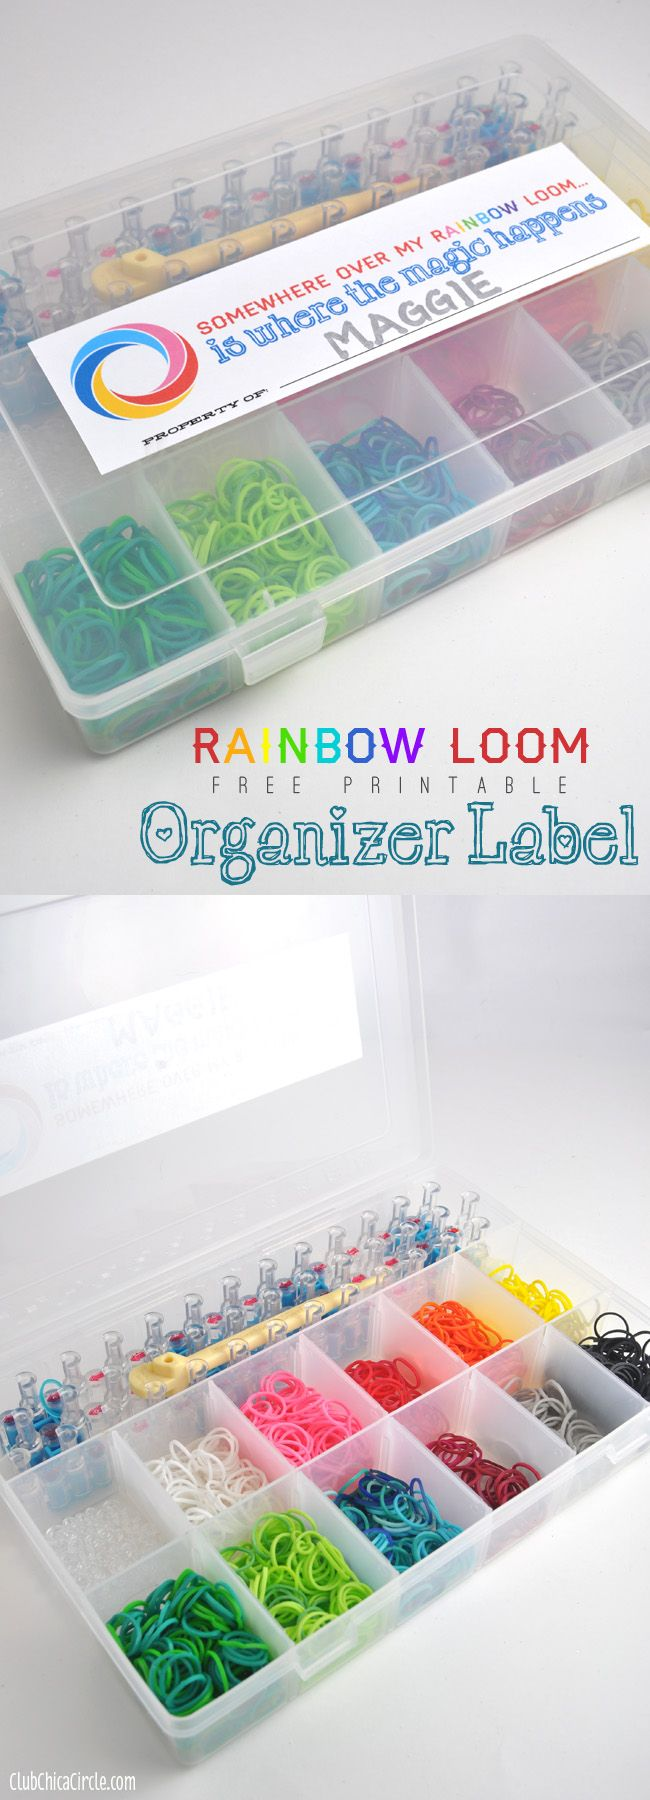 Rainbow Loom Organizer Free Printable Labels | Tween Craft Ideas for Mom and Daughter